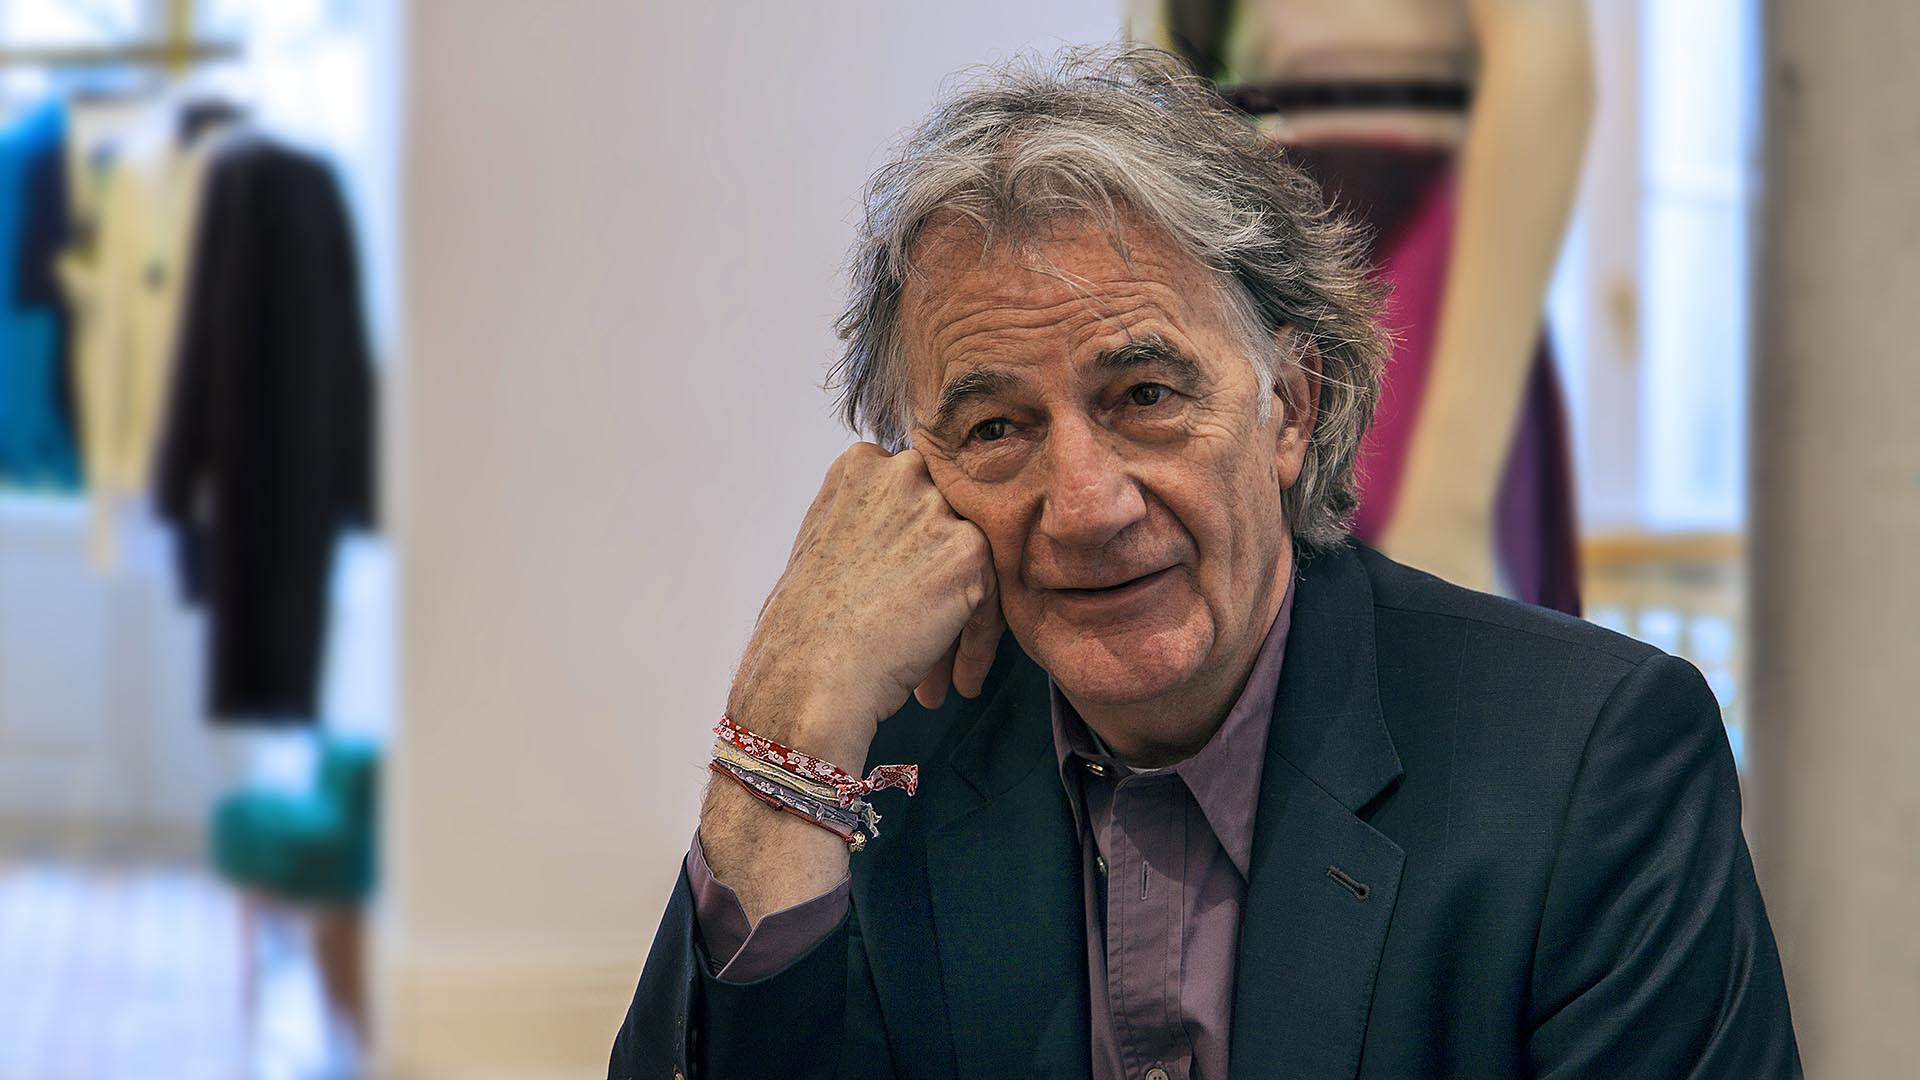 Fashion Designer Paul Smith in seinem Hamburger Biedermeierparadies.